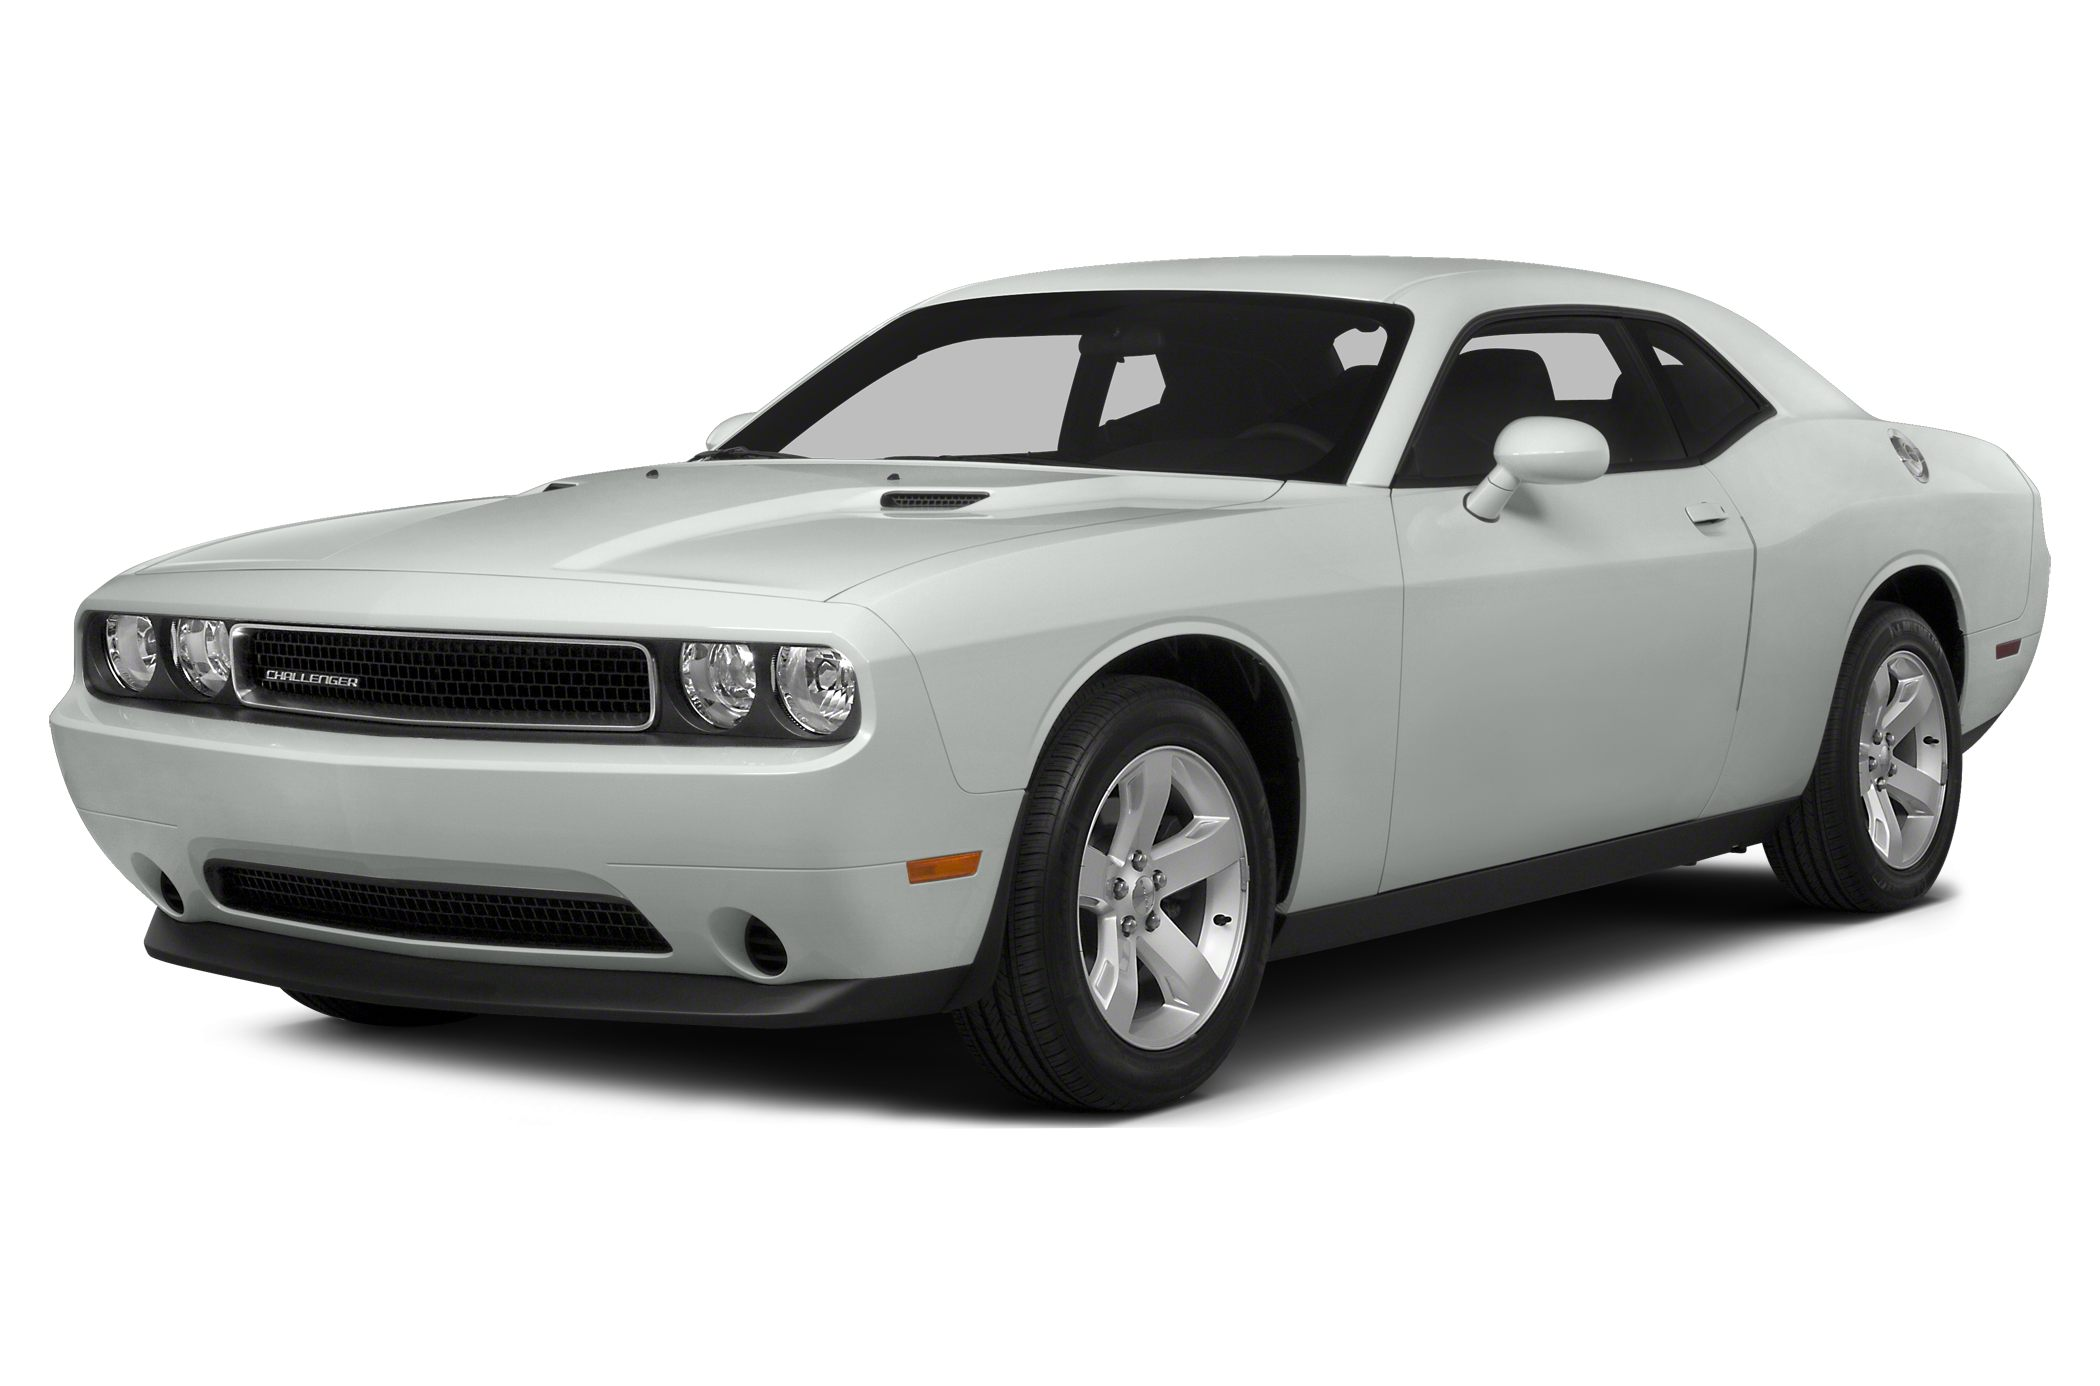 2014 Dodge Challenger SXT At Advantage Chrysler you know you are getting a safe and dependable veh